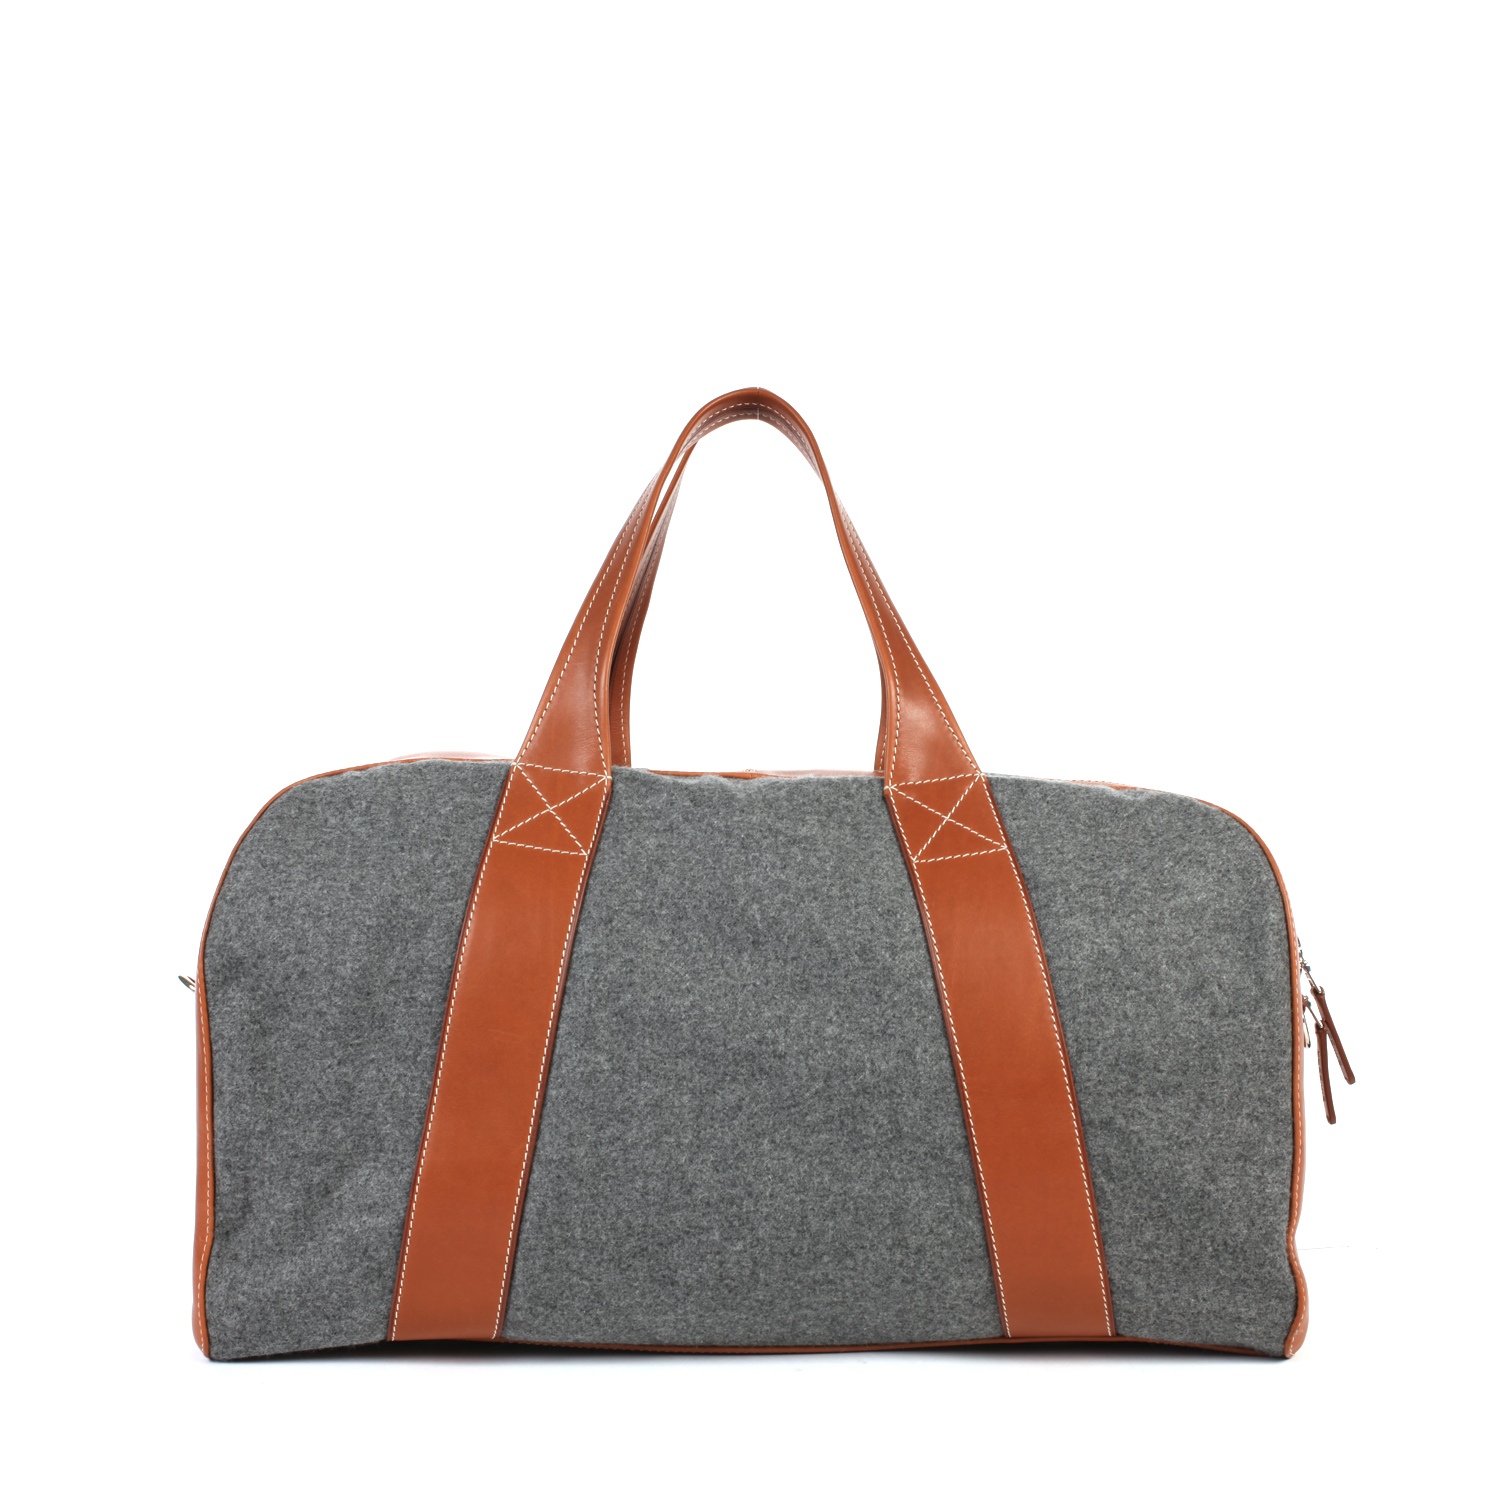 emissar-grey-overnight-negociateur-bag-handmade-from-grey-flannel-and-calfskin-product-3-1008931-868587236